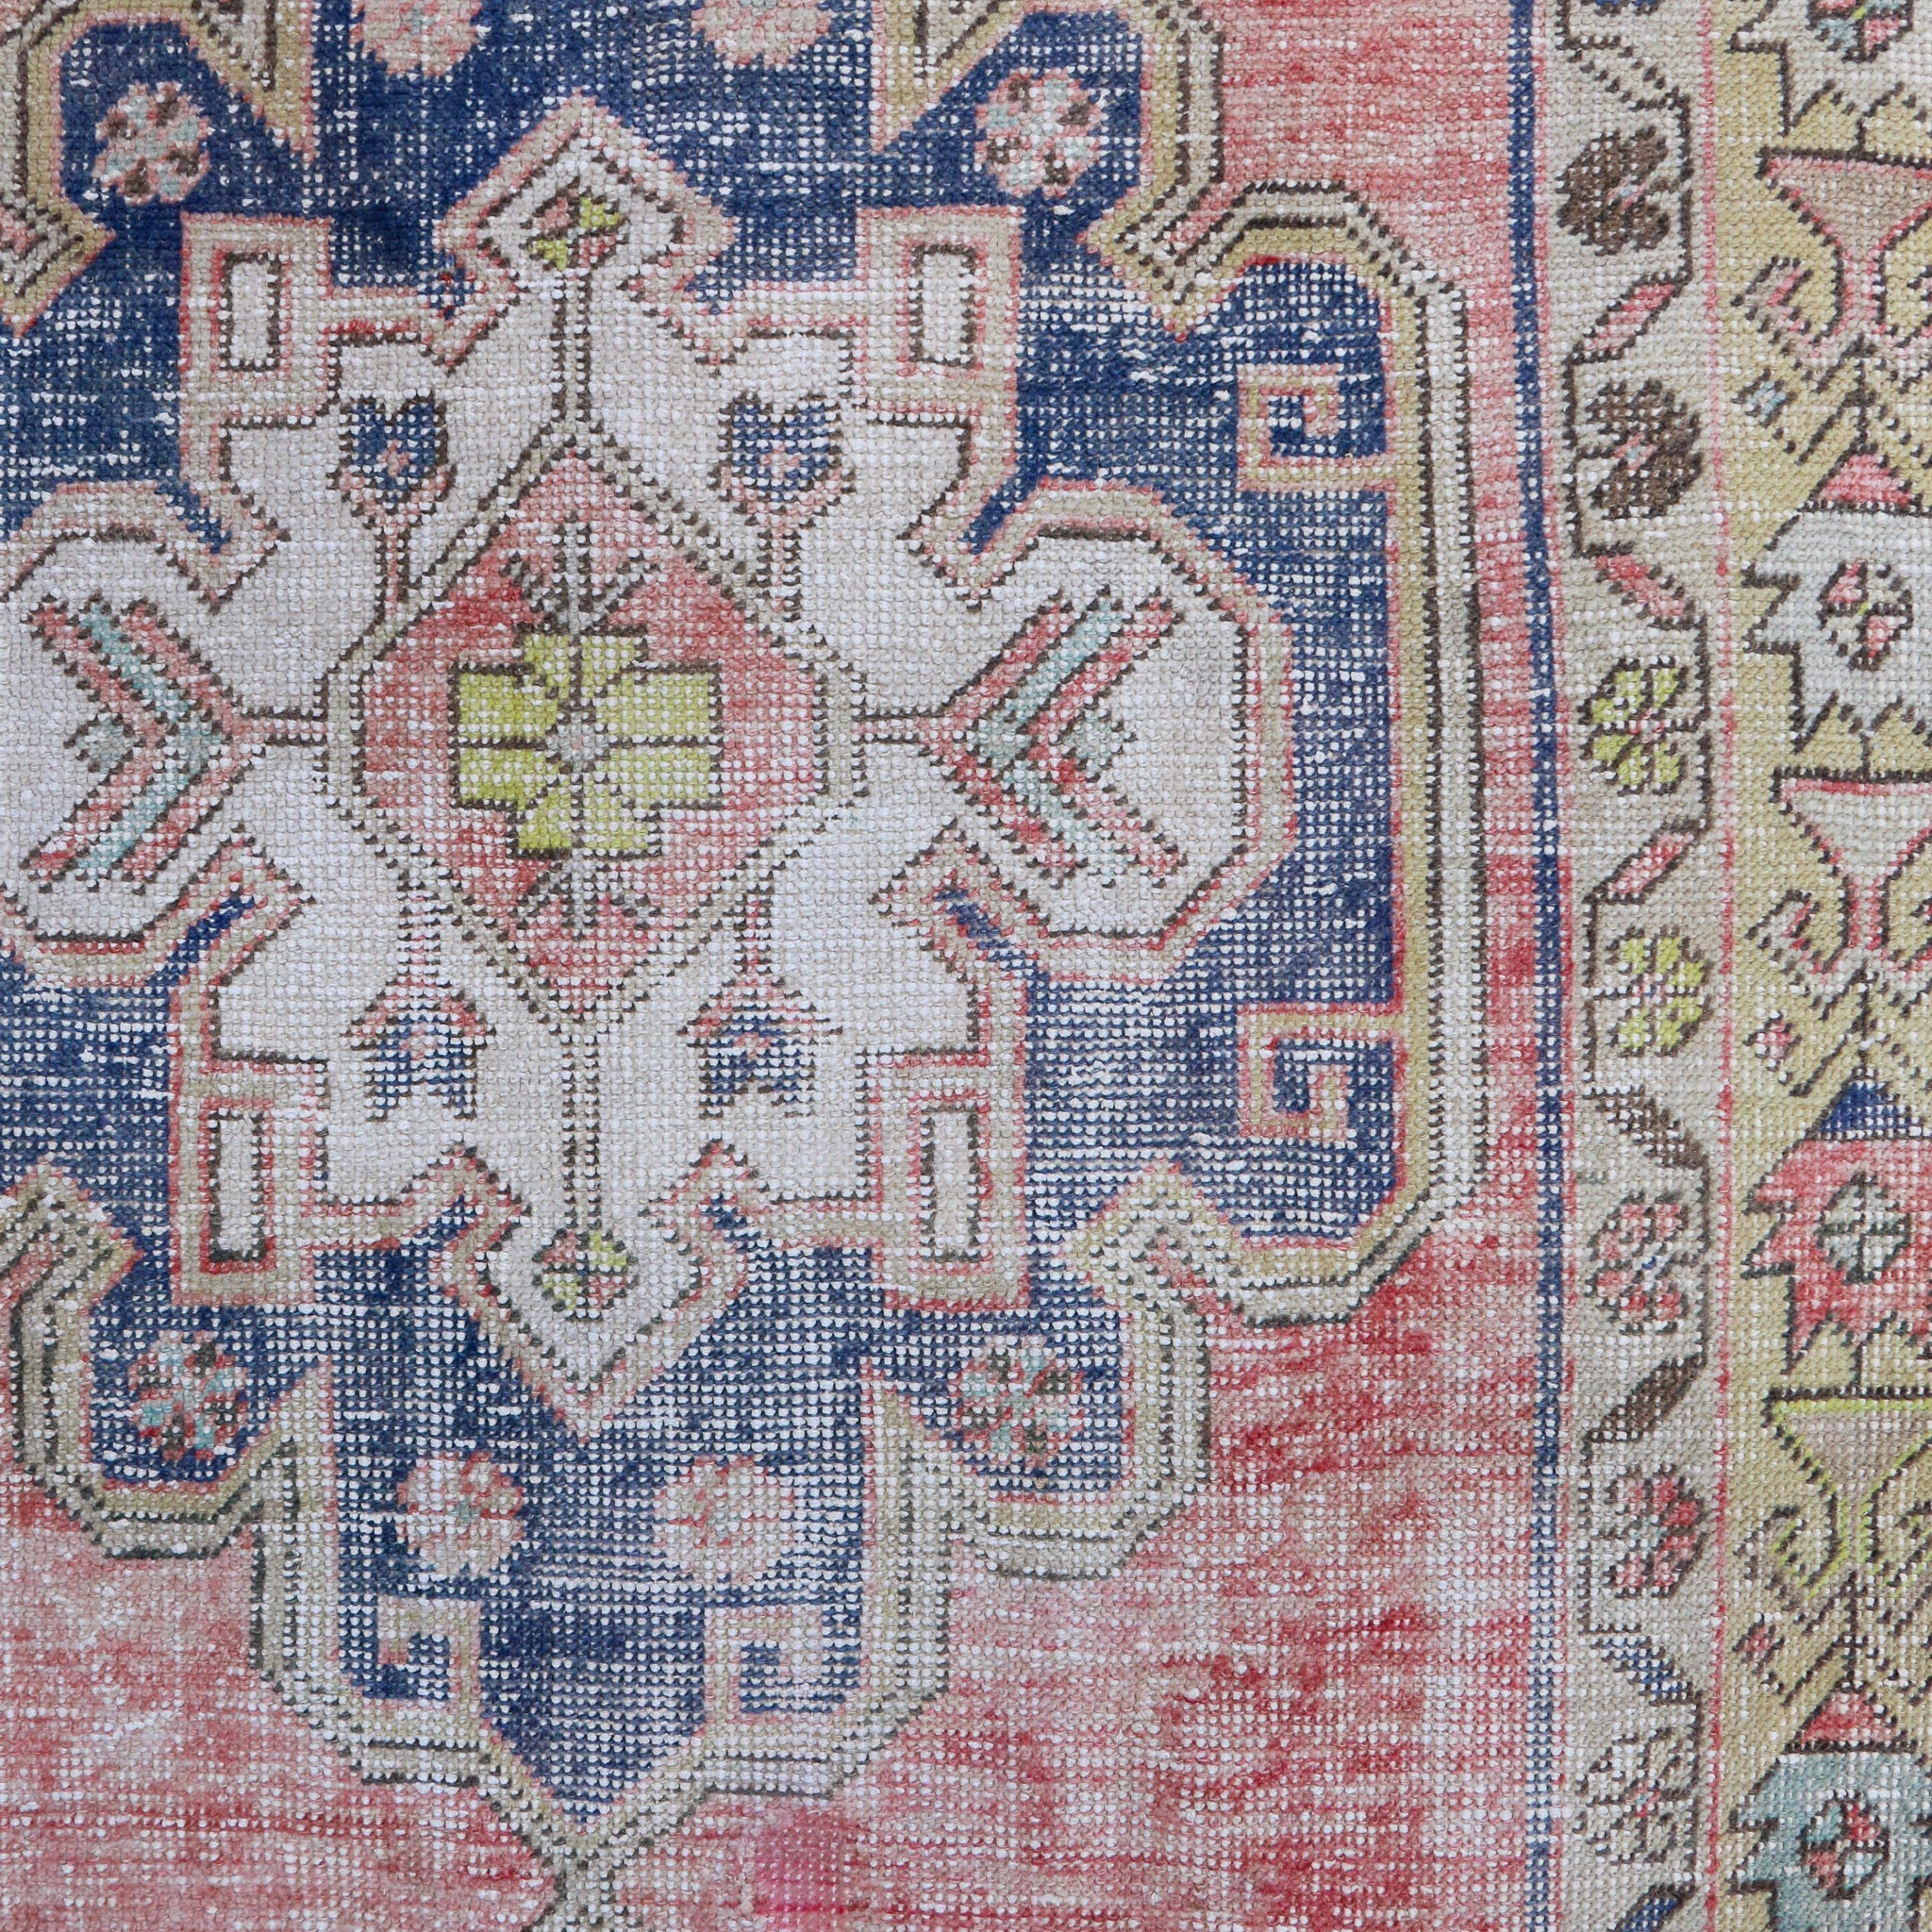 ON HOLD NOT AVAILABLE 1684 Hande 4'7x11'3 Handwoven Vintage Rug